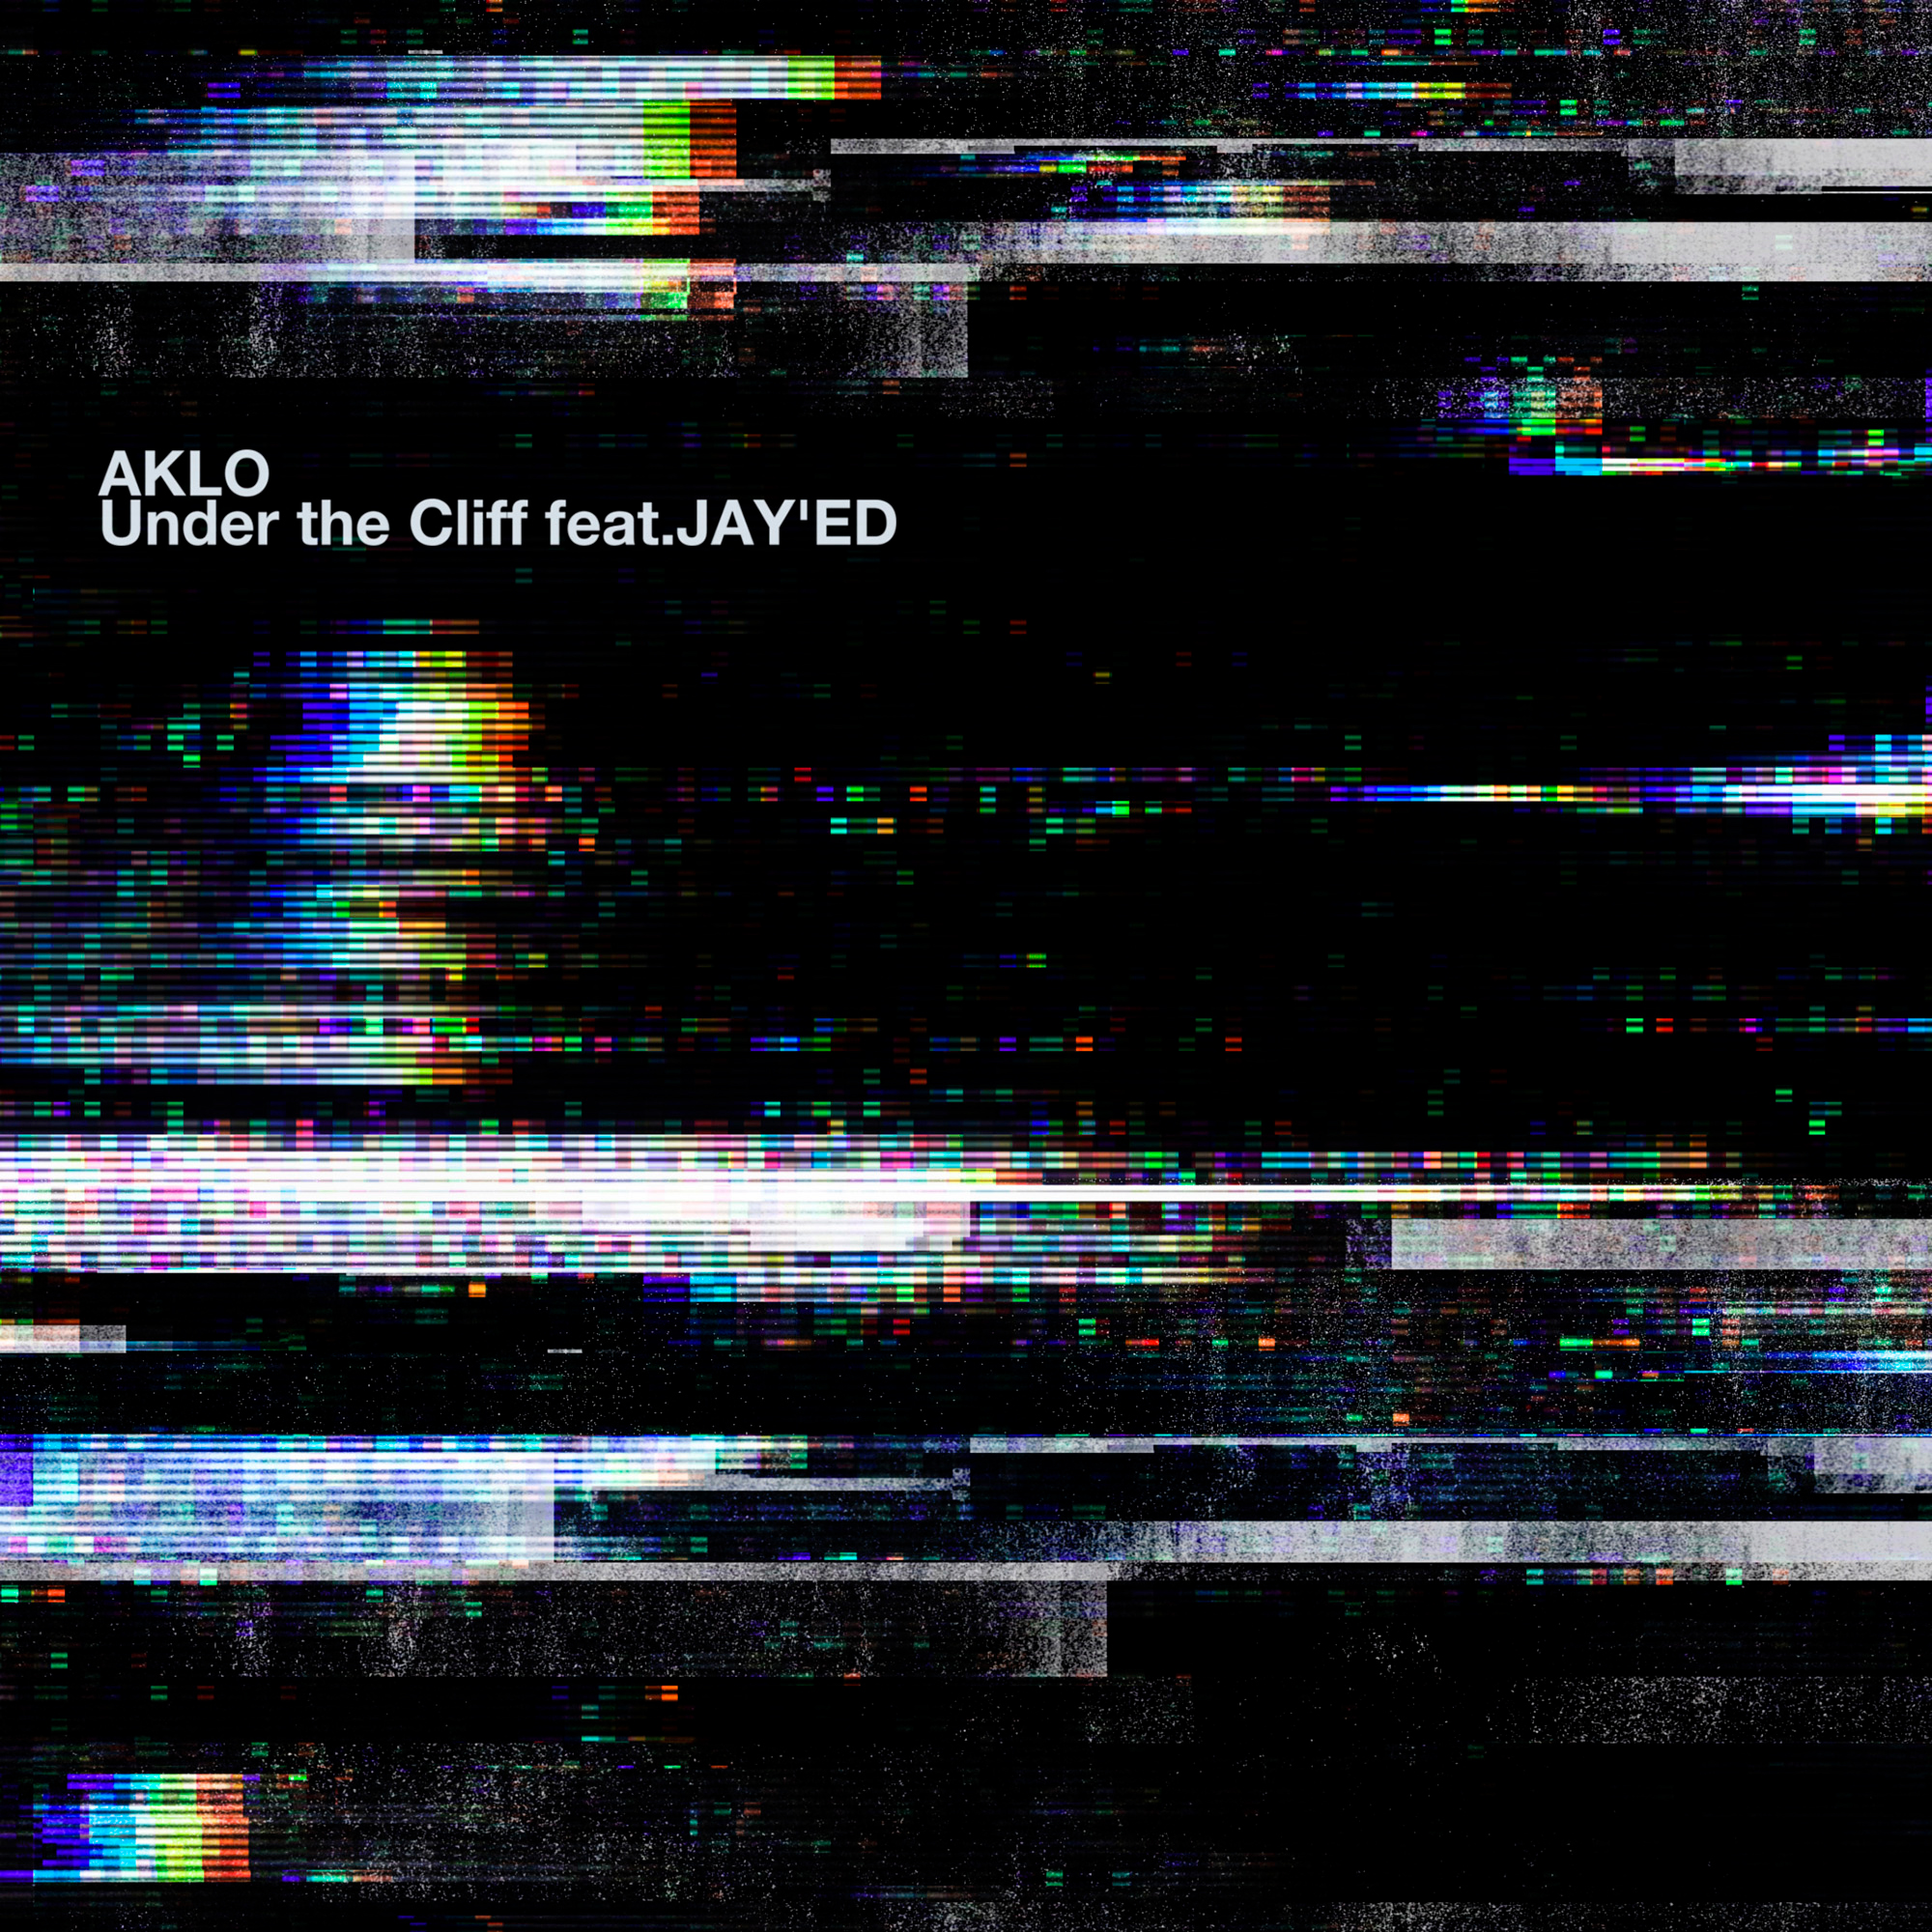 AKLO 「UNDER THE CLIFF feat,JAY'ED」